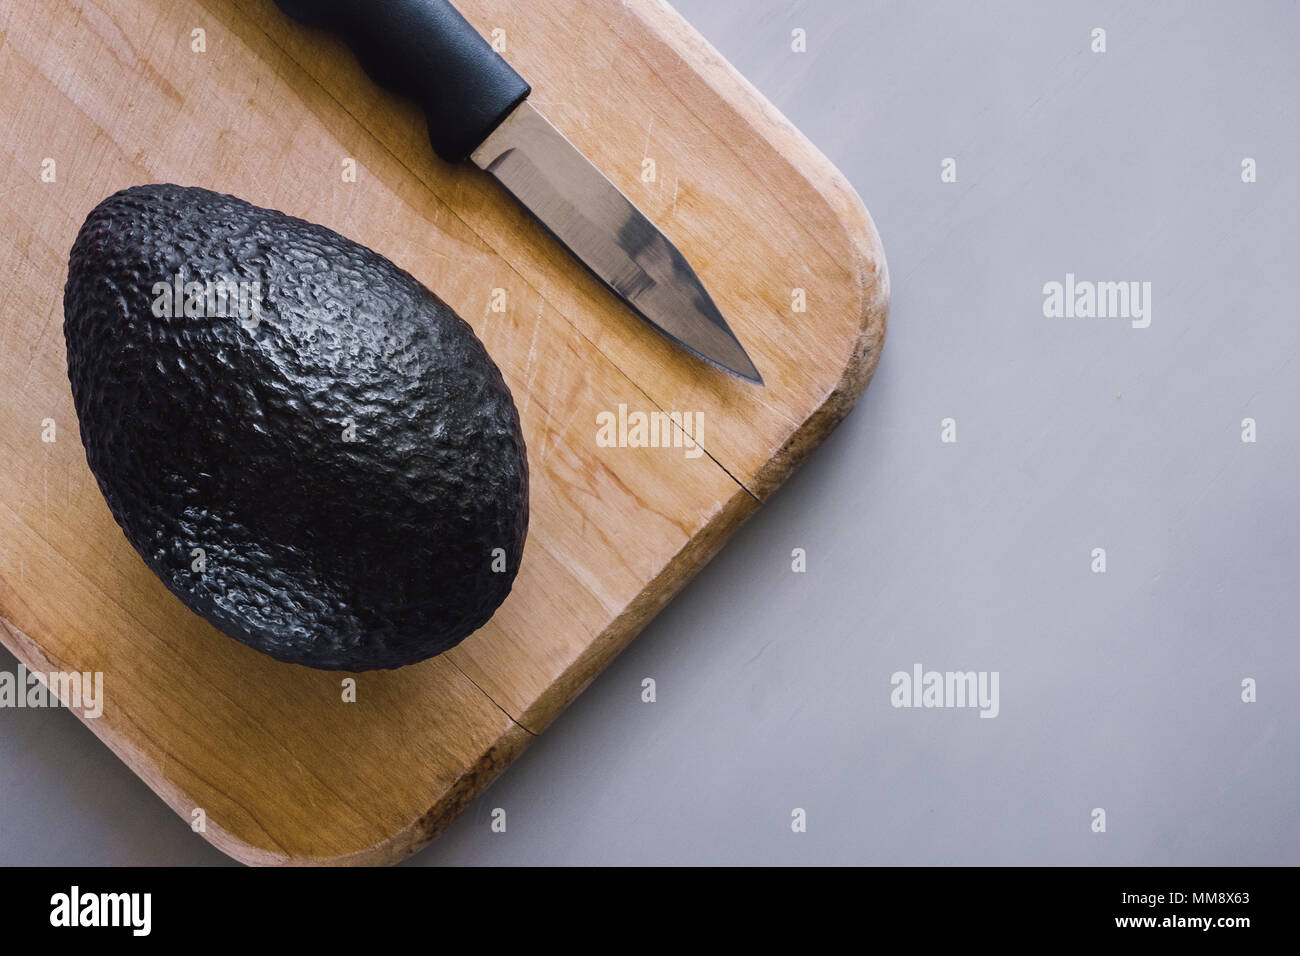 Unopened Avocado on Cutting Board with Space for Copy - Stock Image